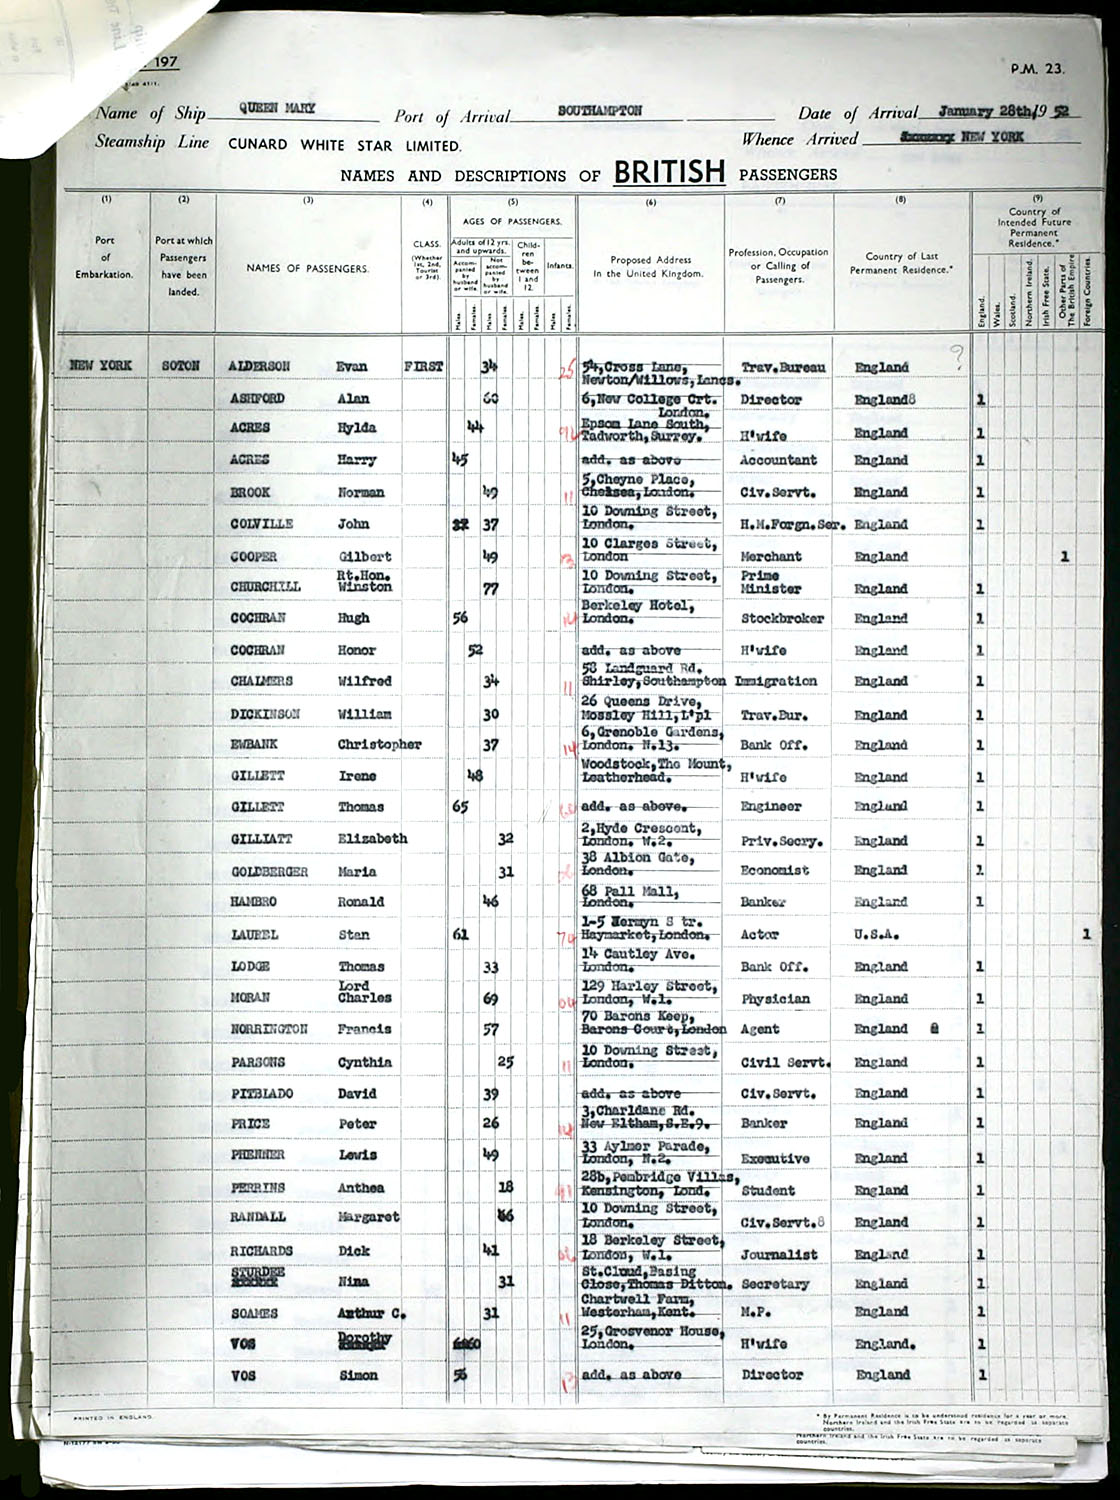 New York to Southampton Ship Manifest - January 28, 1952